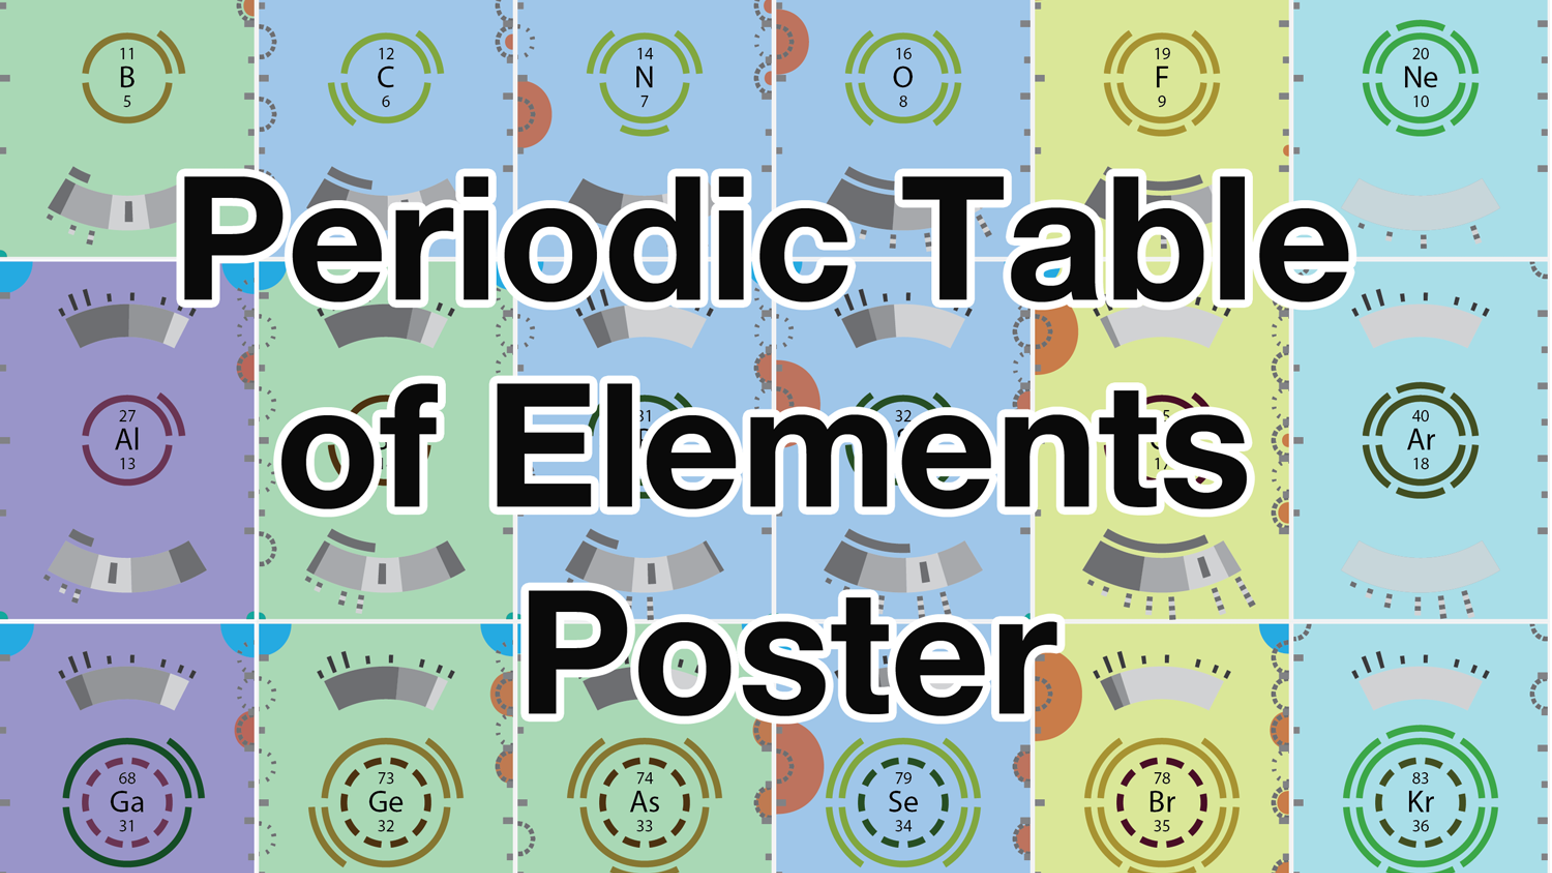 The periodic table of elements poster by sam price kickstarter a periodic table of elements that is easy to understand and visually appealing to look gamestrikefo Images